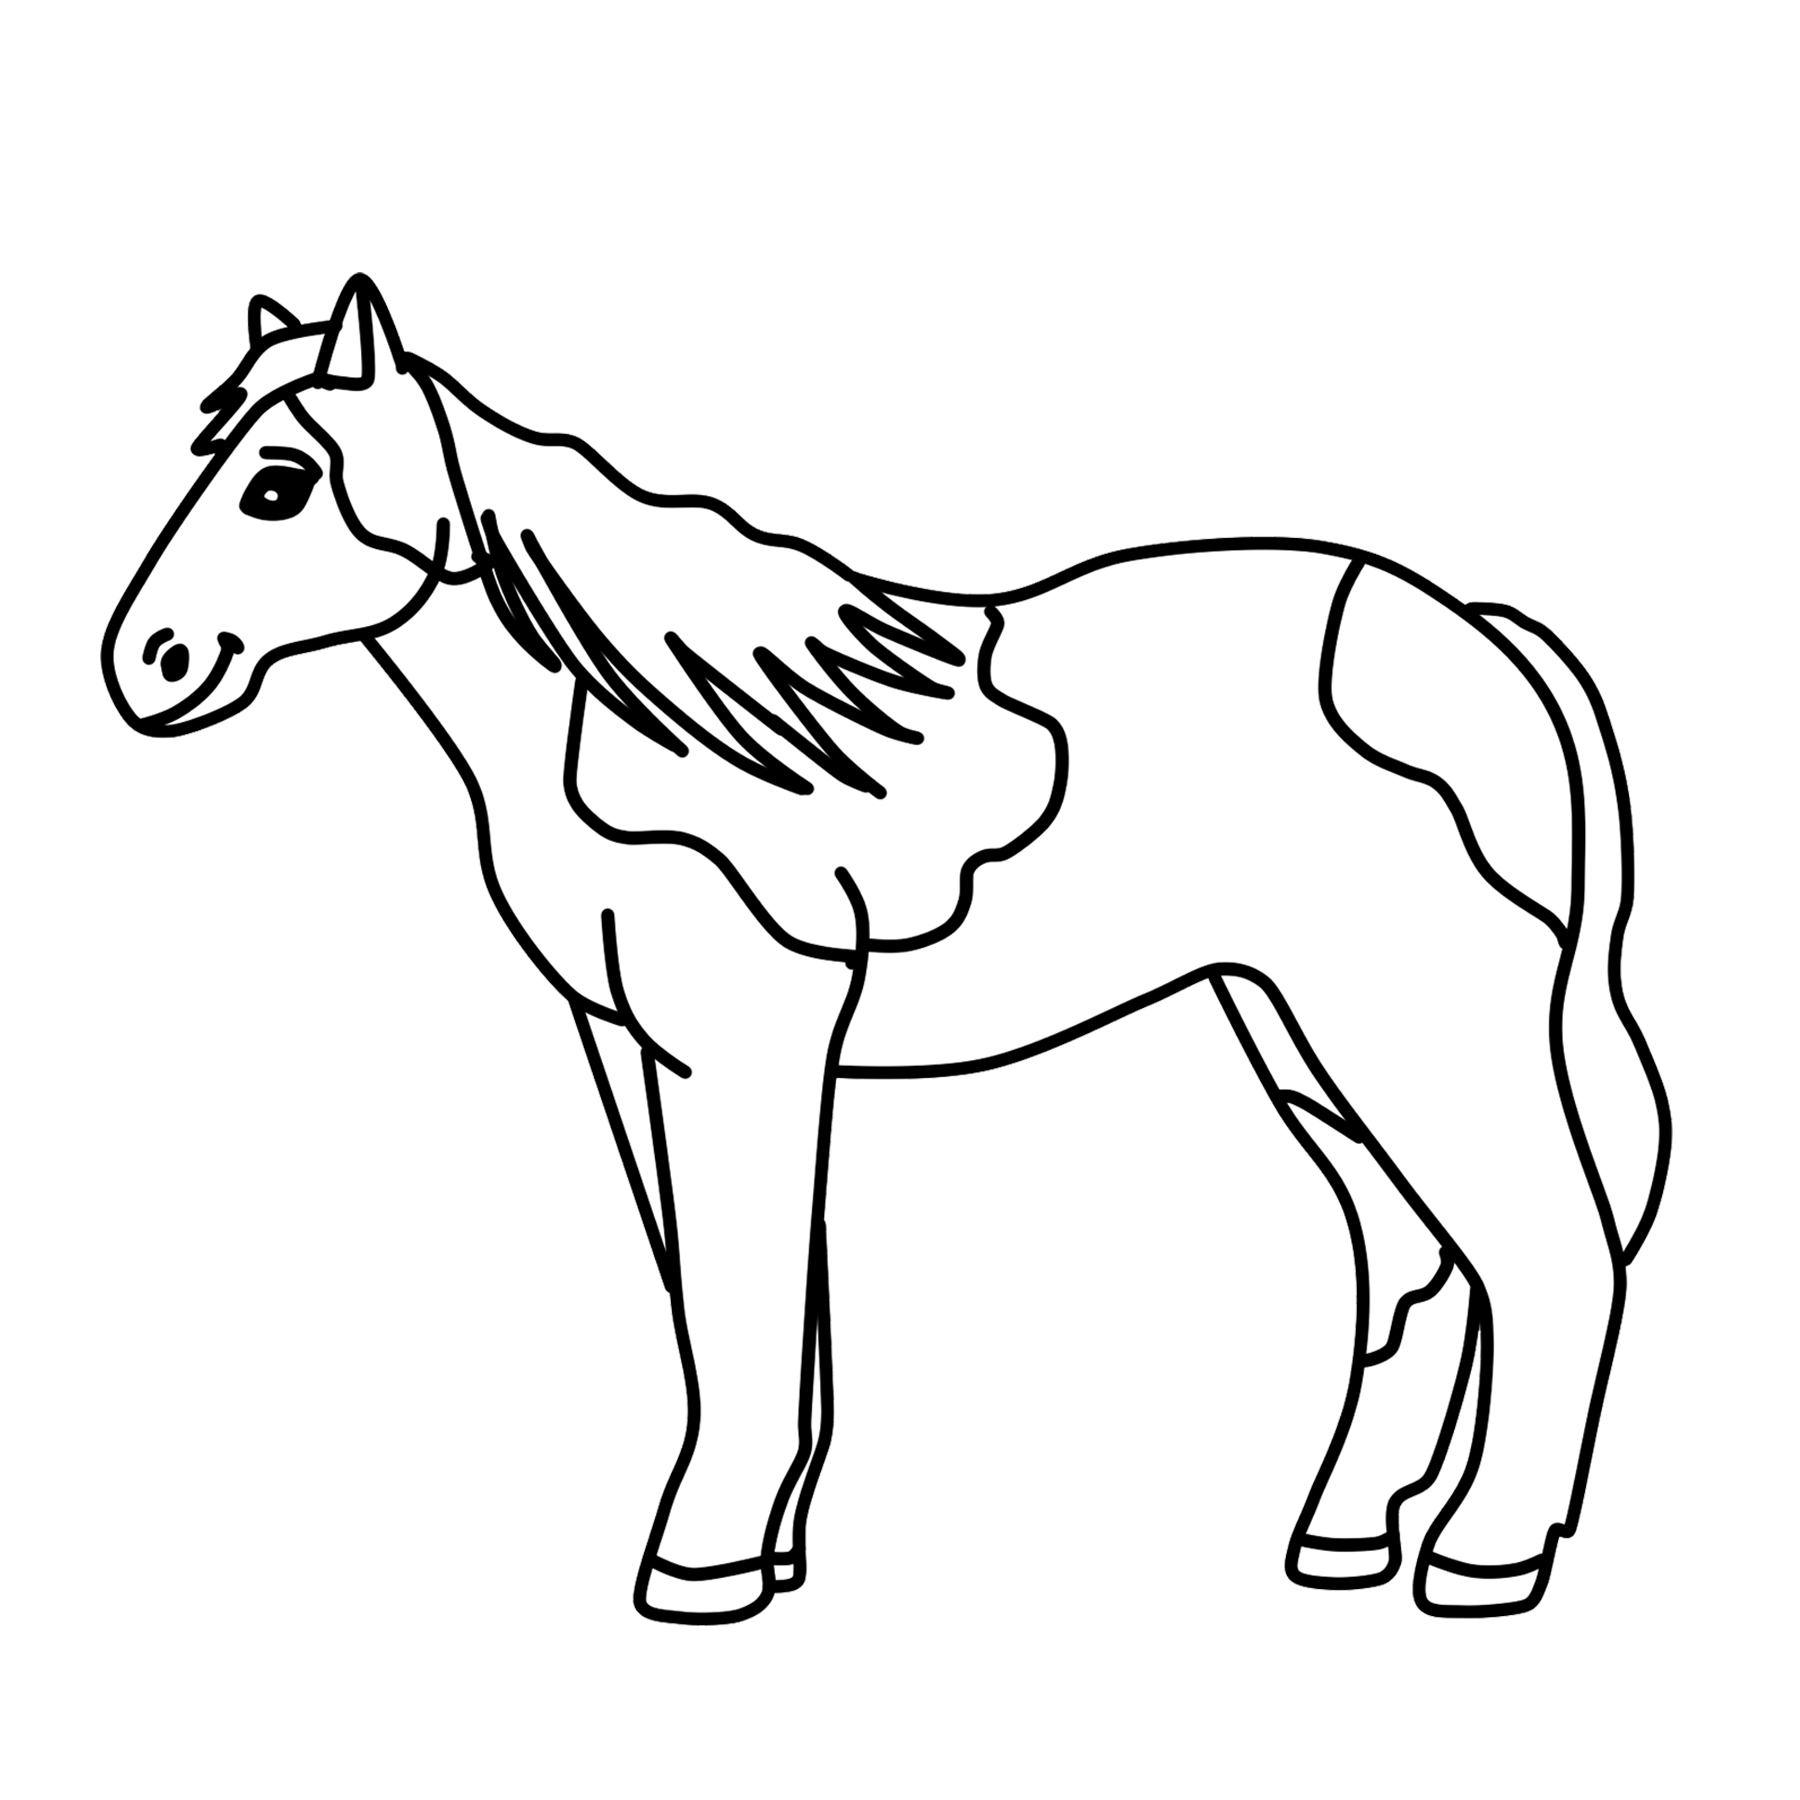 Horse clip art black and white. Spotted clipart pony graphic